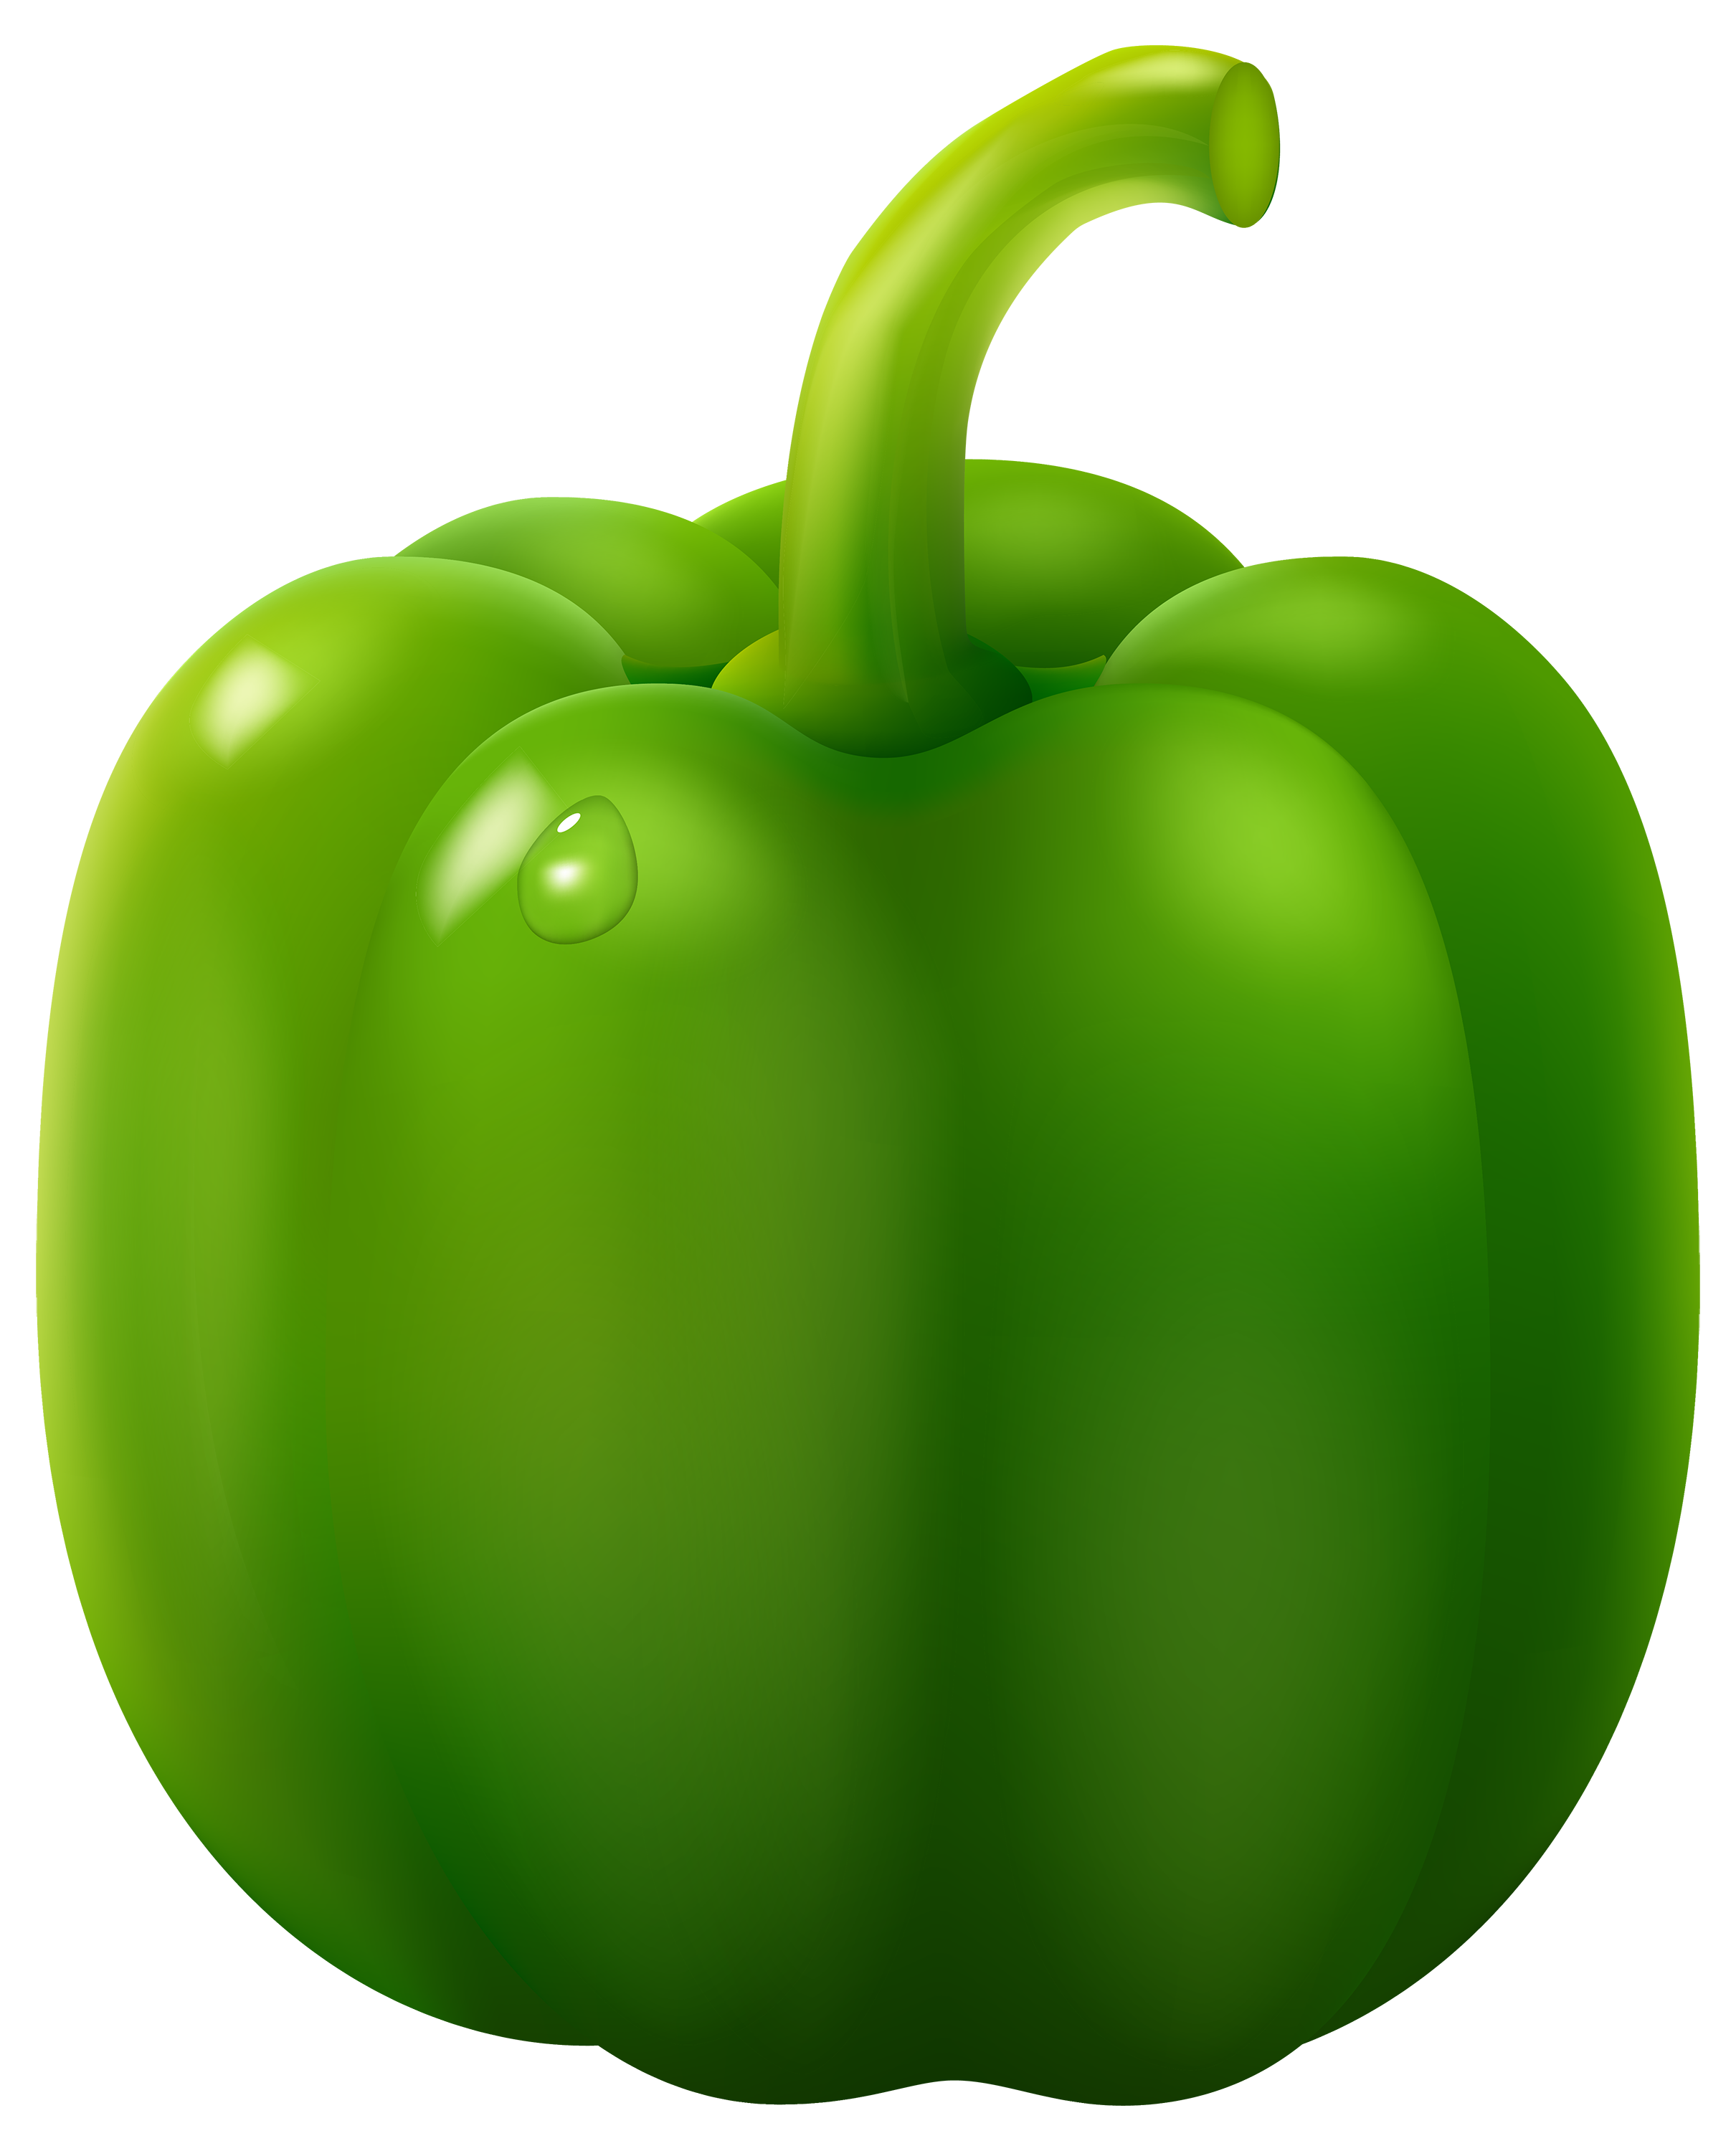 Pepper clipart. Green png best web